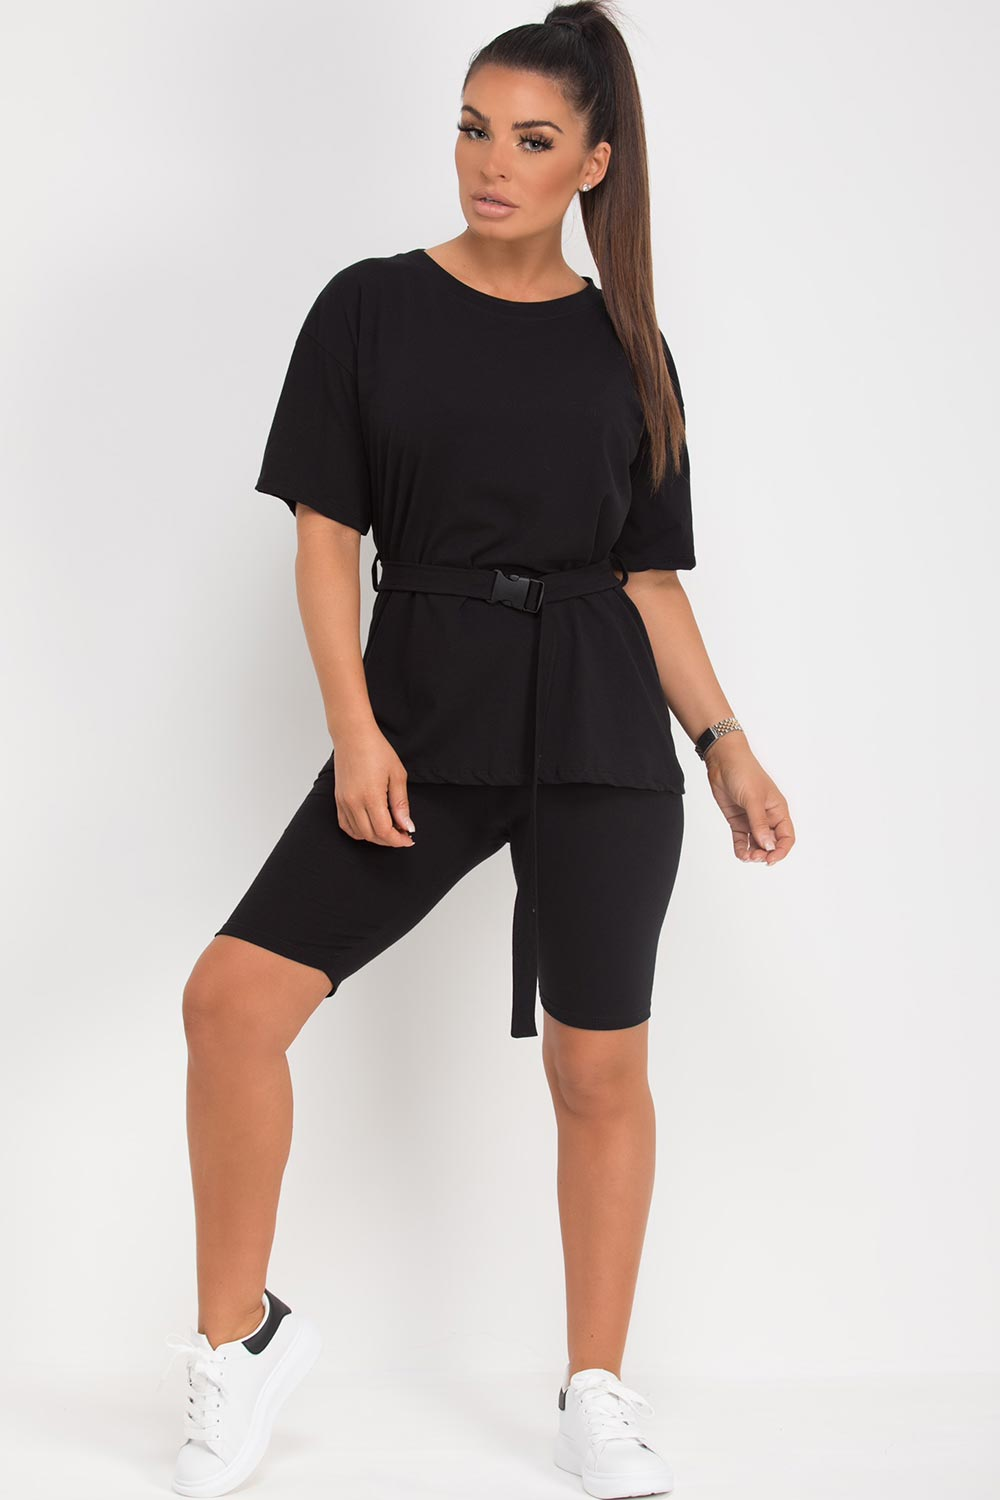 black cycling shorts top with utility belt set